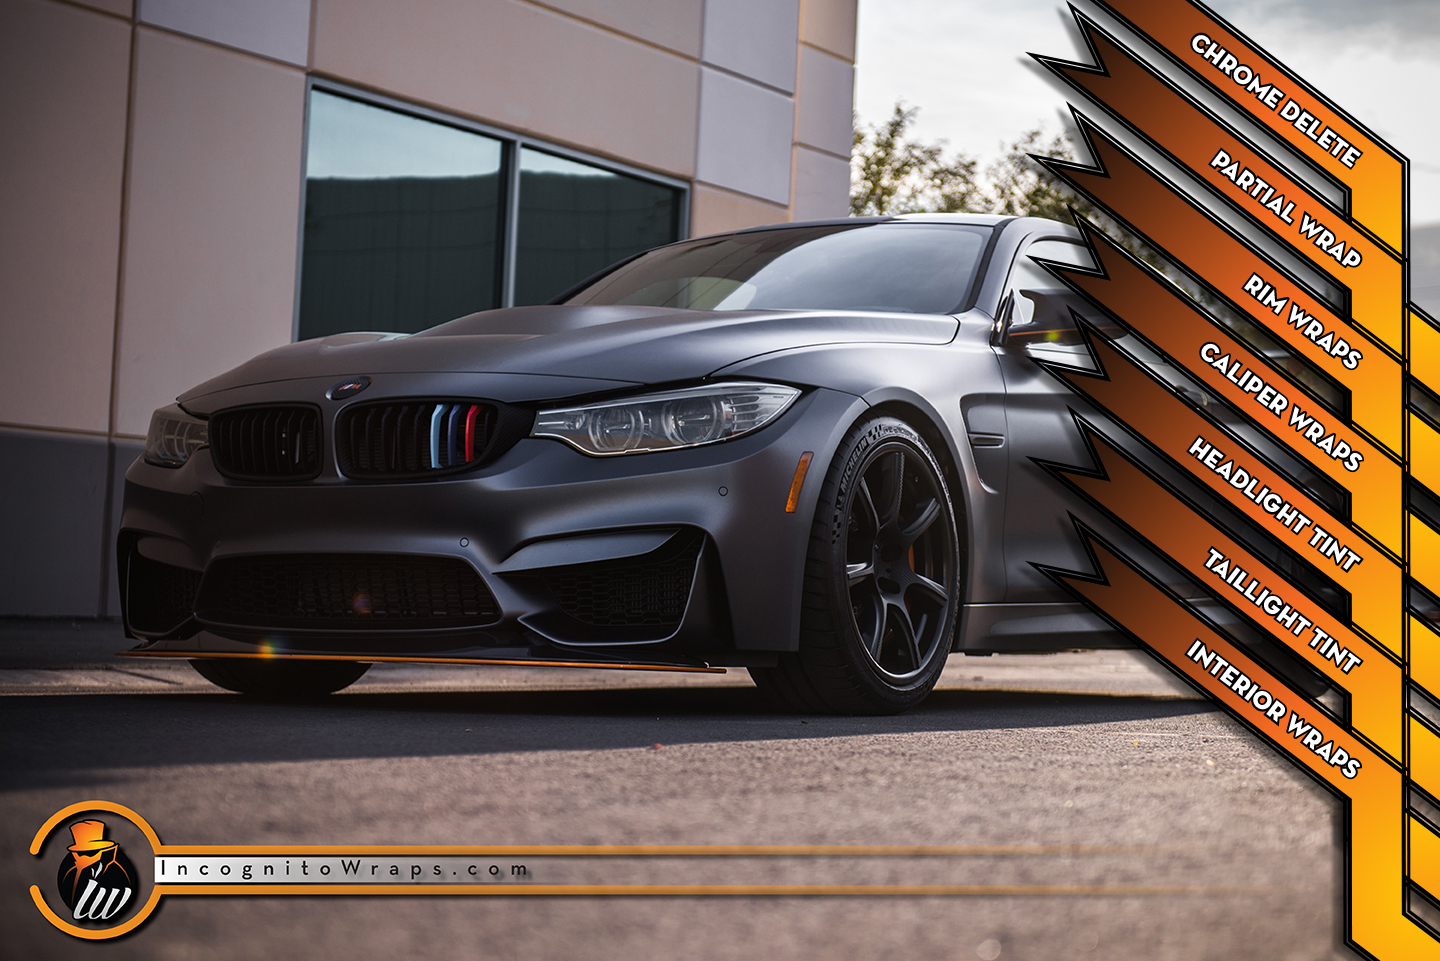 BMW M4 GTS - Carbon and Copper